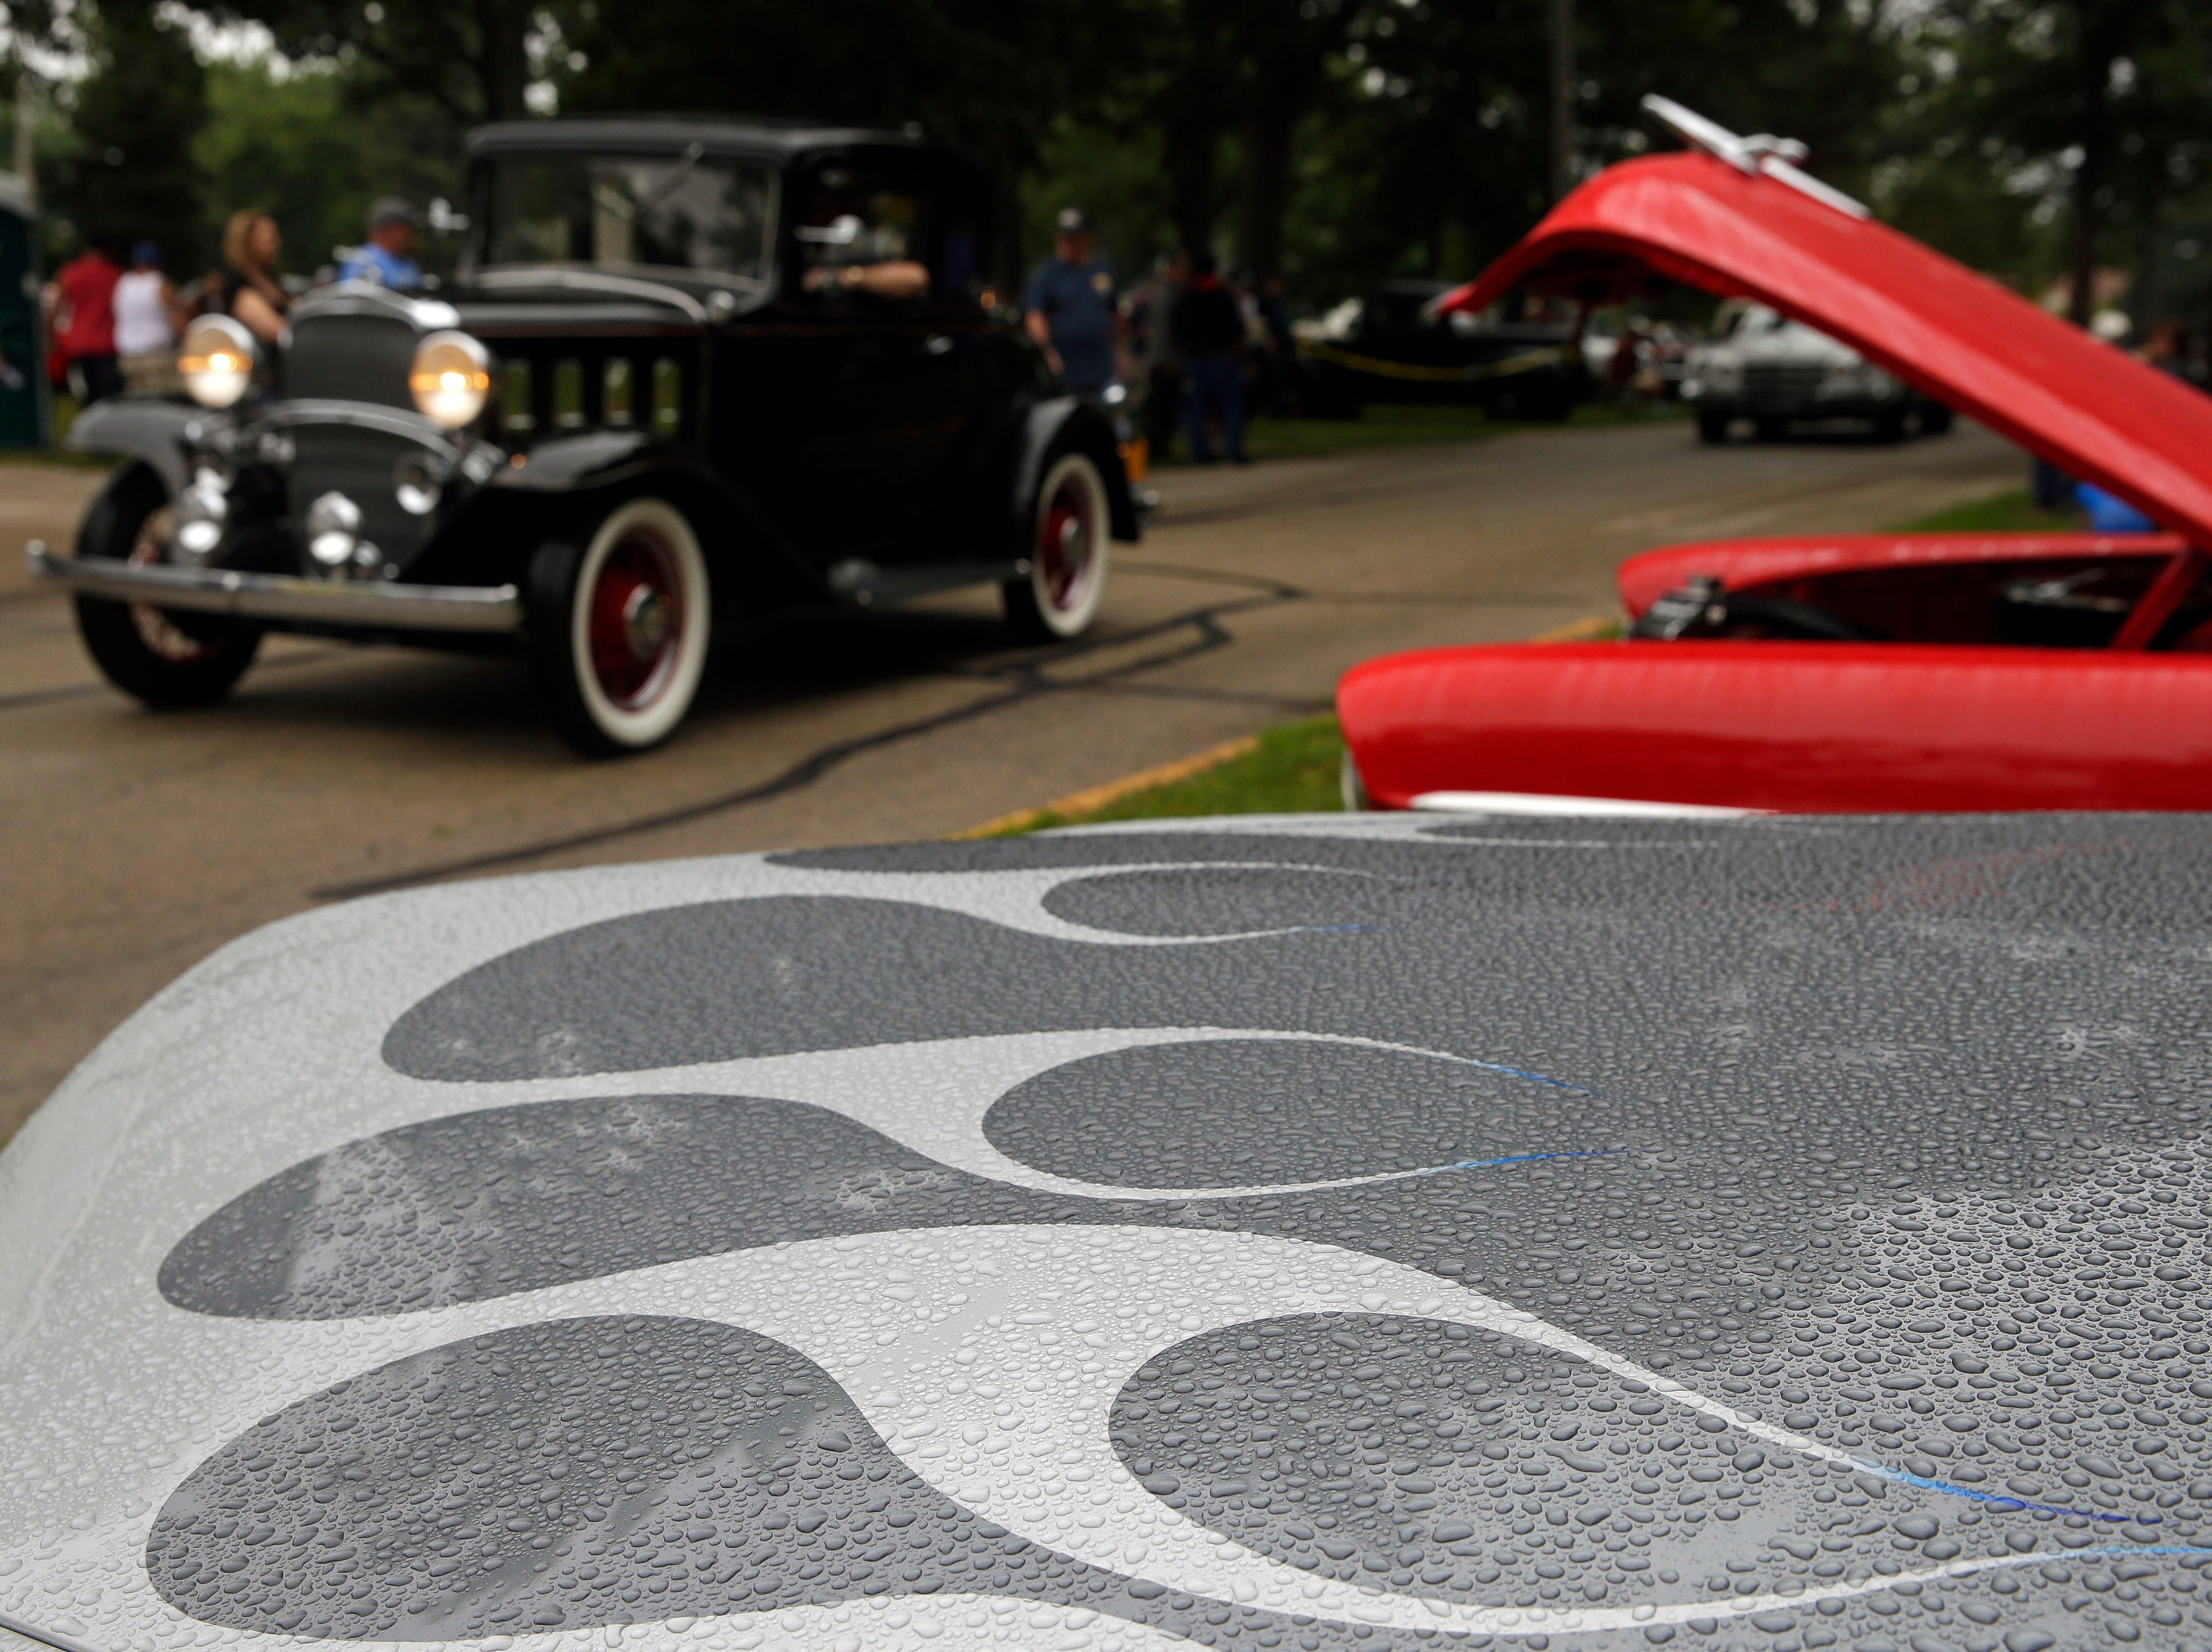 The Appleton Old Car Show and Swap Meet takes place Sunday, July 22, 2018, at Pierce Park in Appleton, Wis.